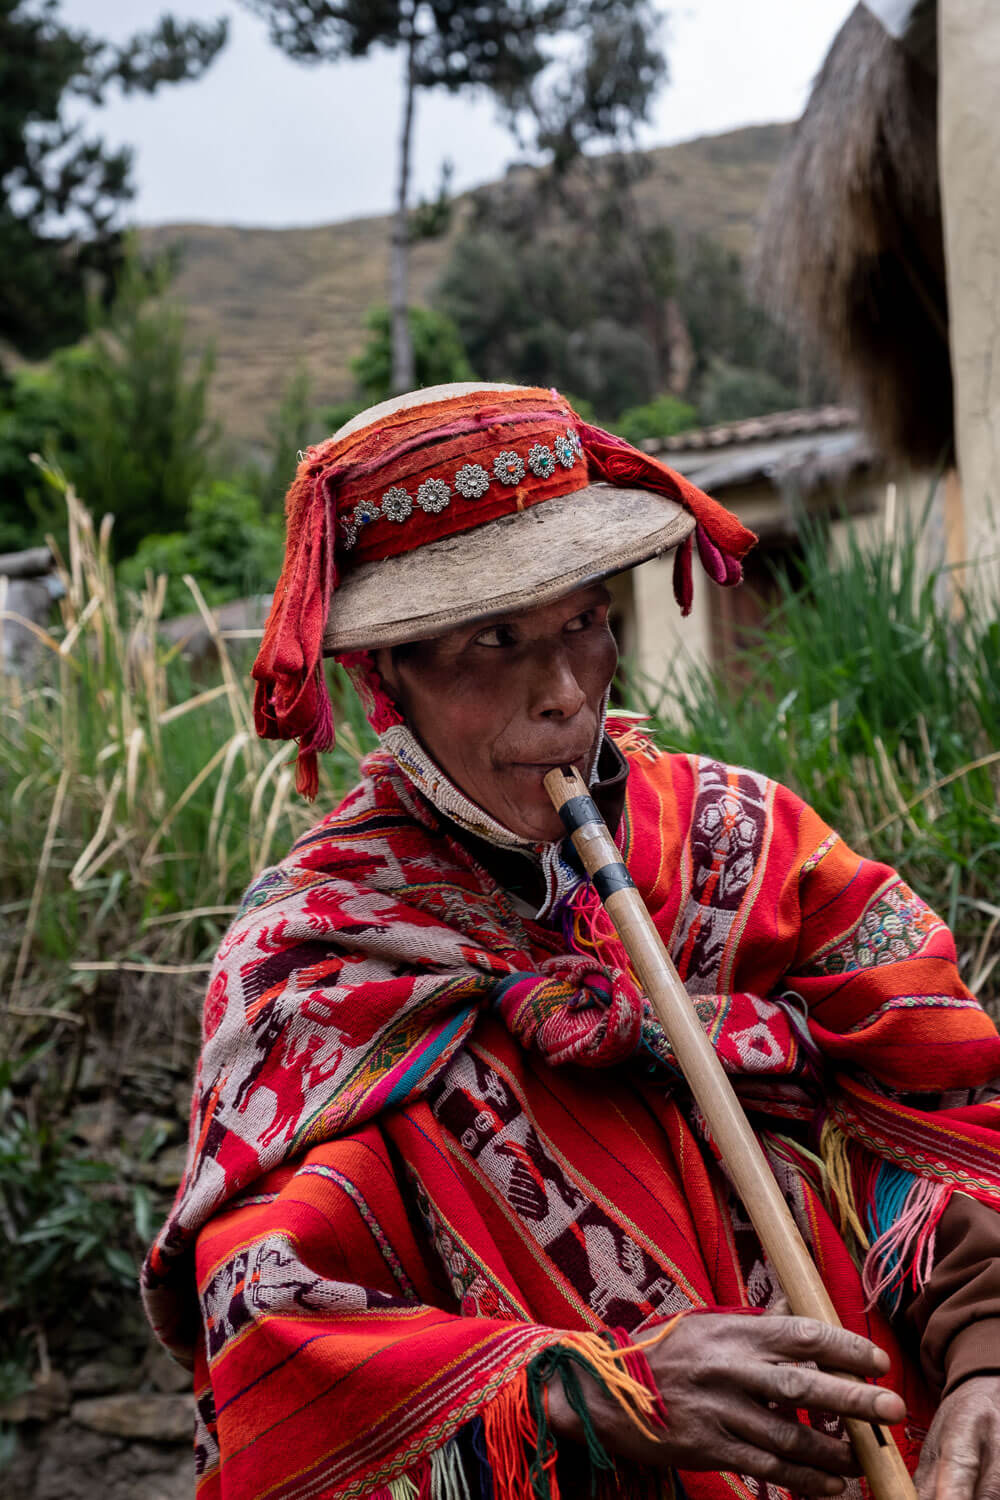 "Learn about the ancient weaving techniques that create beautiful Peruvian garments. The weavers of Patacancha, The Sacred Valley, Peru. Travel photography and guide by © Natasha Lequepeys for ""And Then I Met Yoko"". #peru #sacredvalley #patacancha #photoblog #travelblog #travelphotography #portraitphotography #travelitinerary #fujifilm #weaving #tradition #culture #people #andes #village #weavingdemonstration #cusco #ollantaytambo #travel #travelperu"